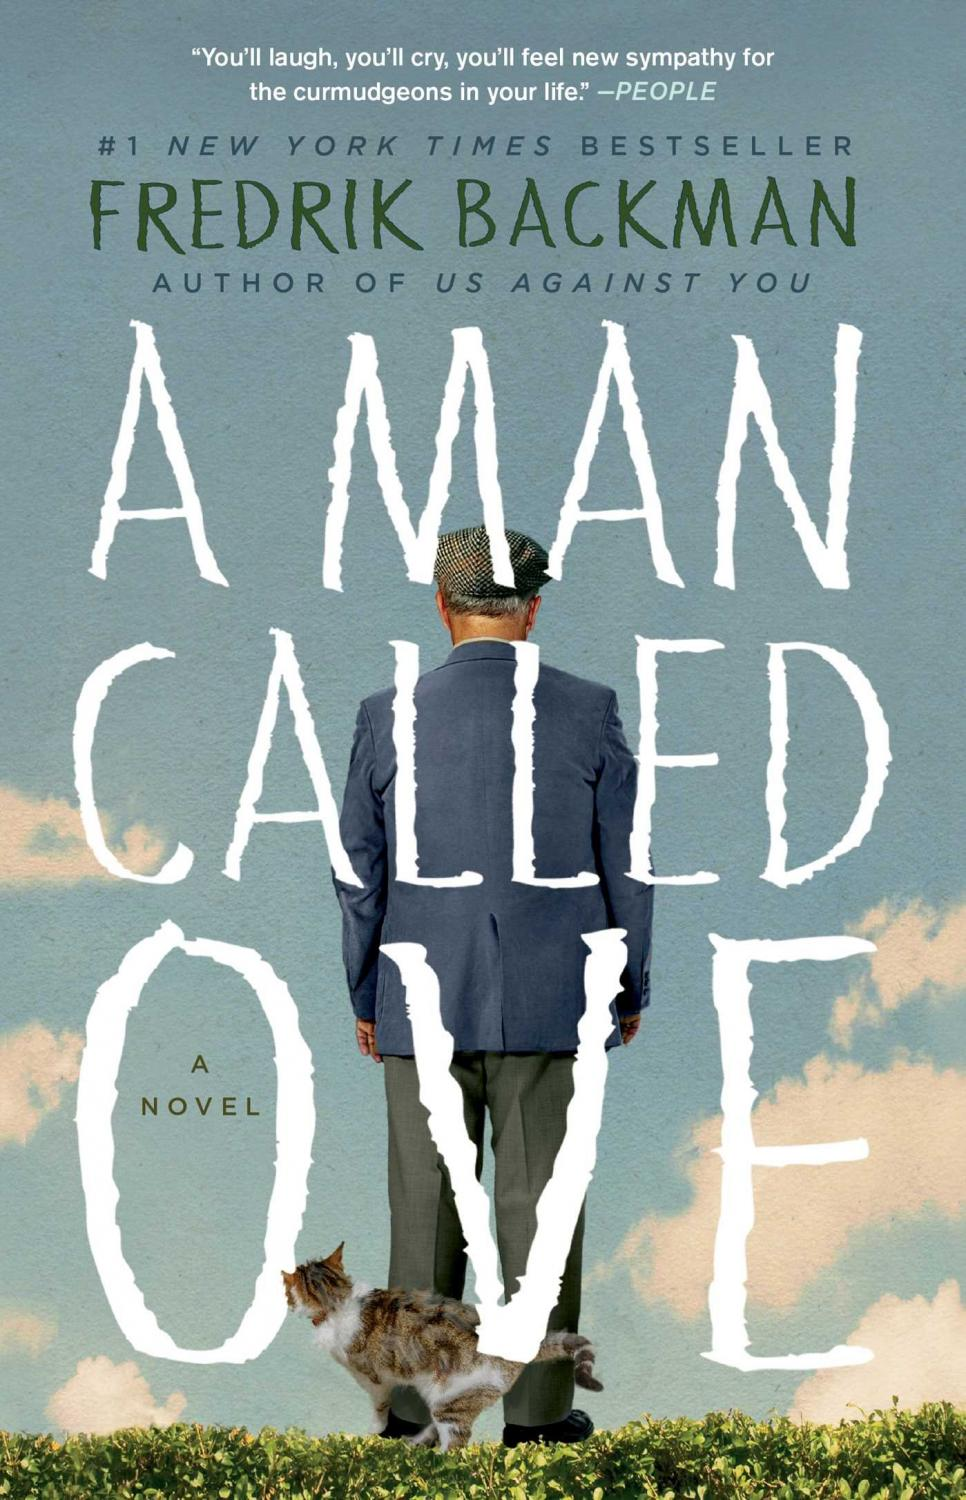 Book Cover for a Man Called Ove.jpg